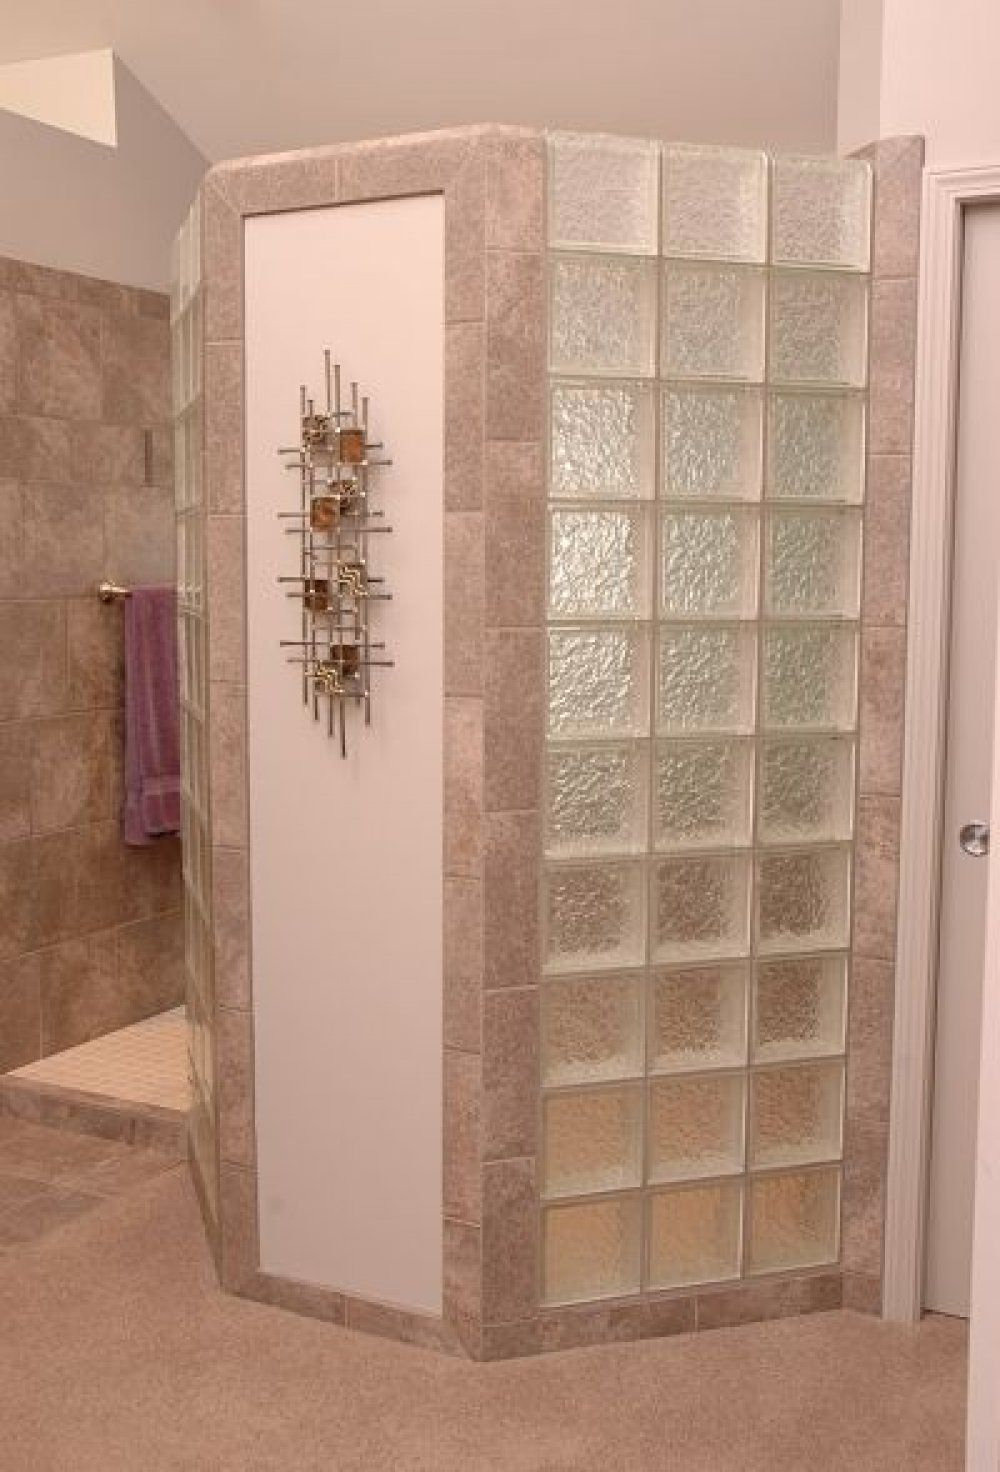 Doorless Shower This Doorless Walk In Shower Design Has A Glass Block Priva